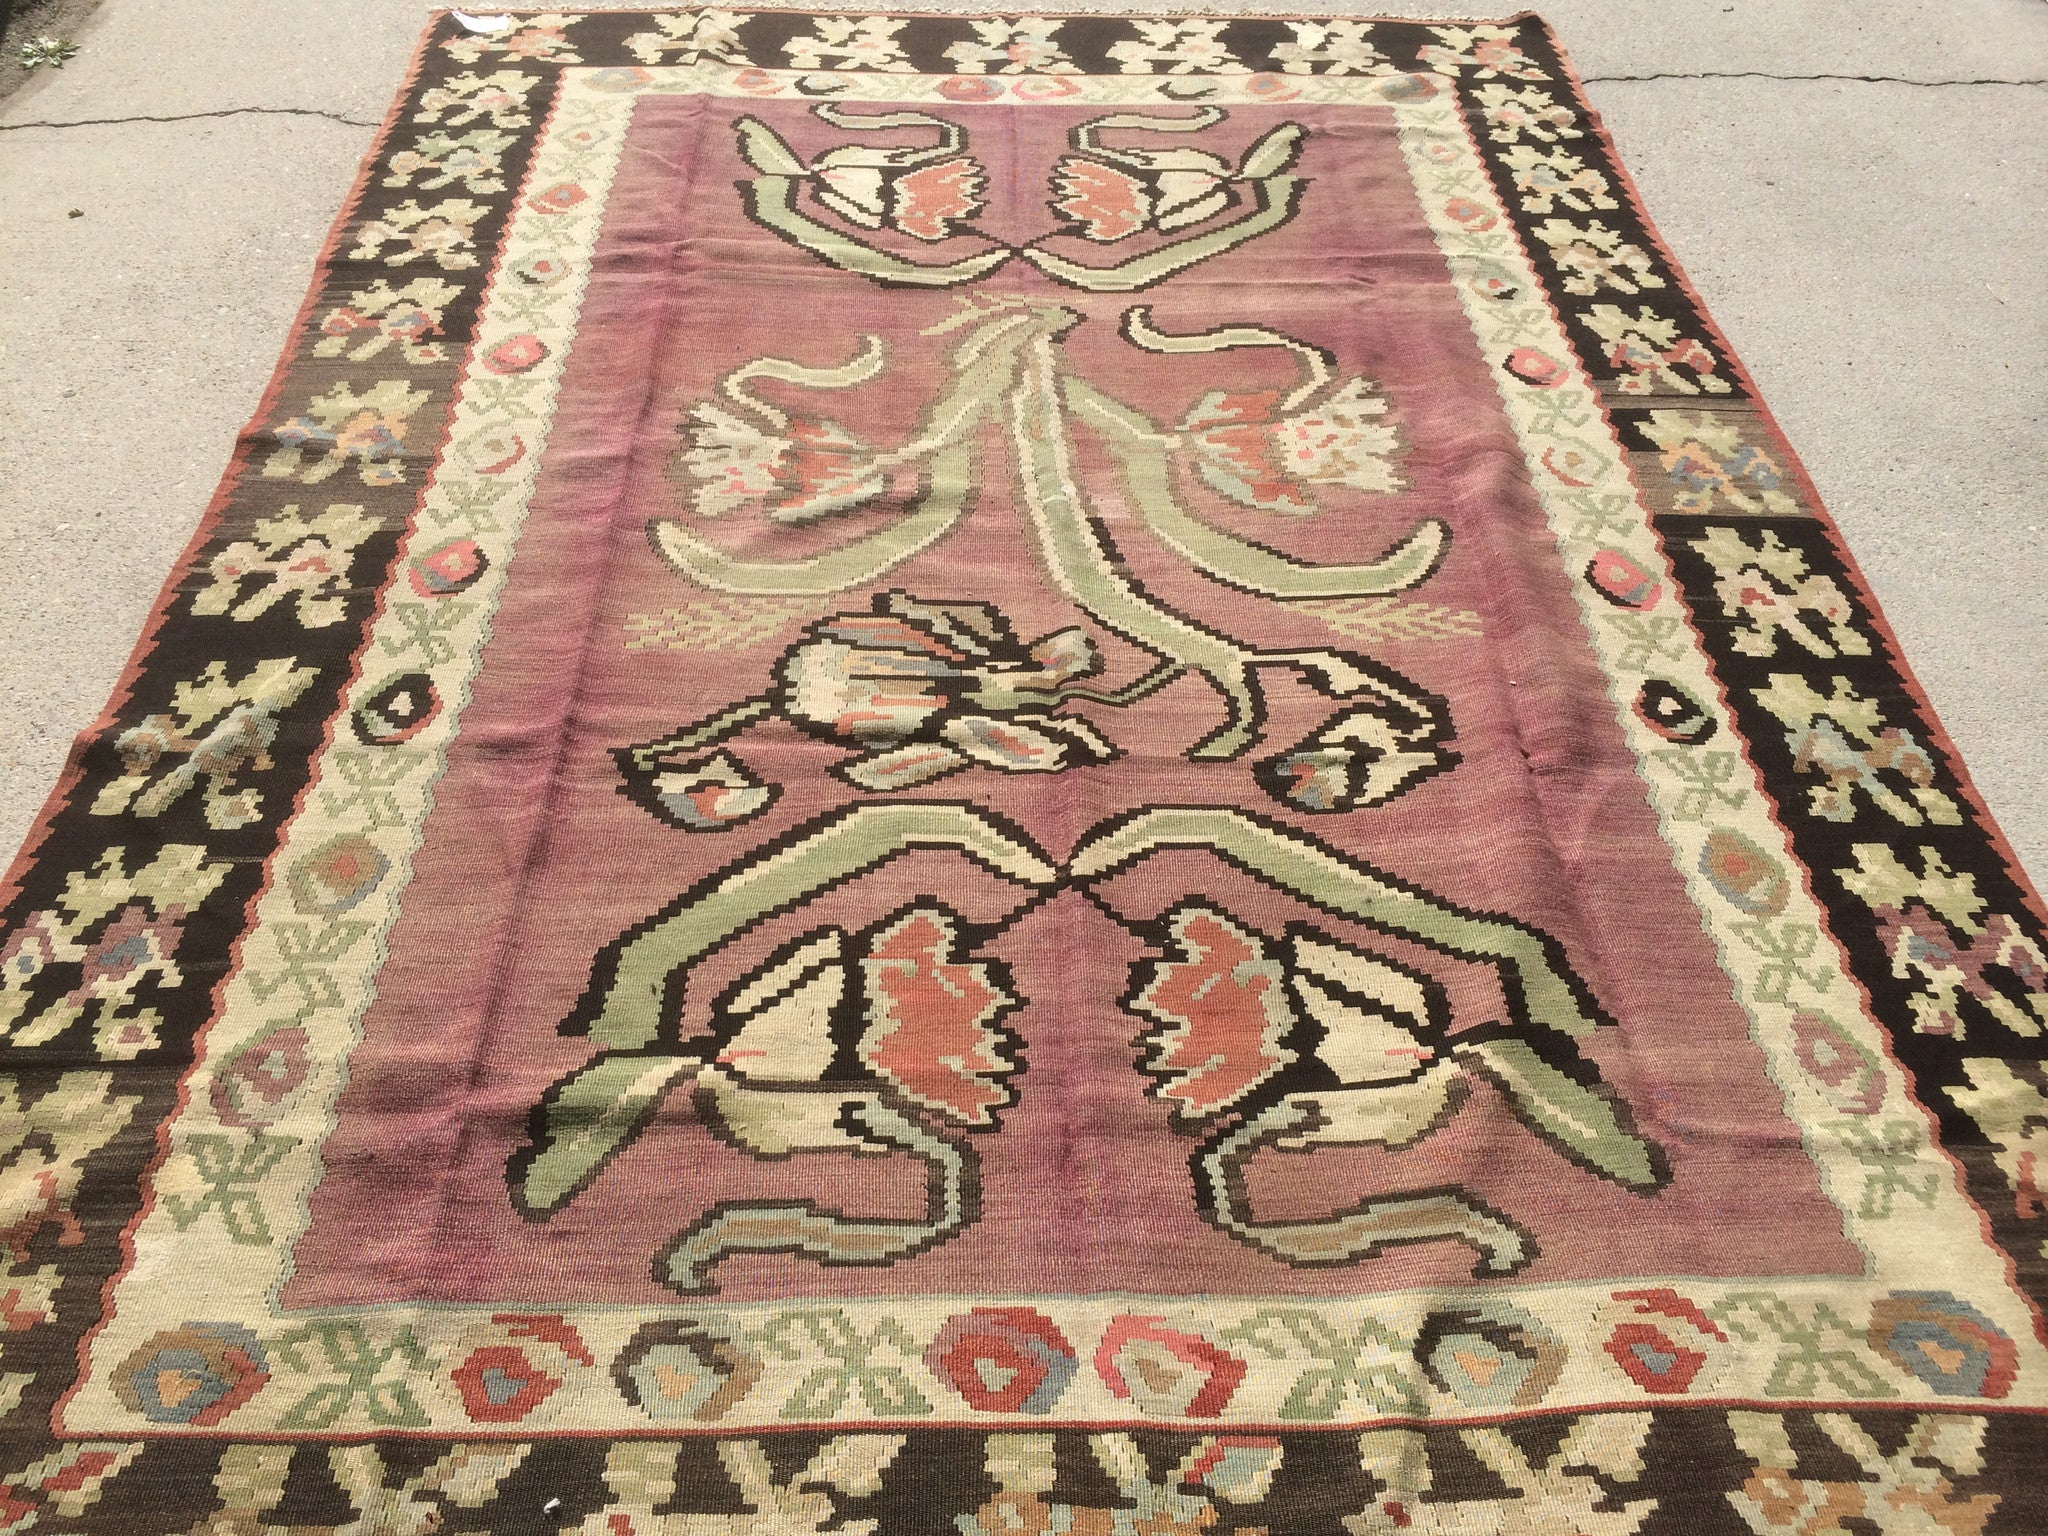 Vintage Turkish Bessarabian Kilim   SOLD